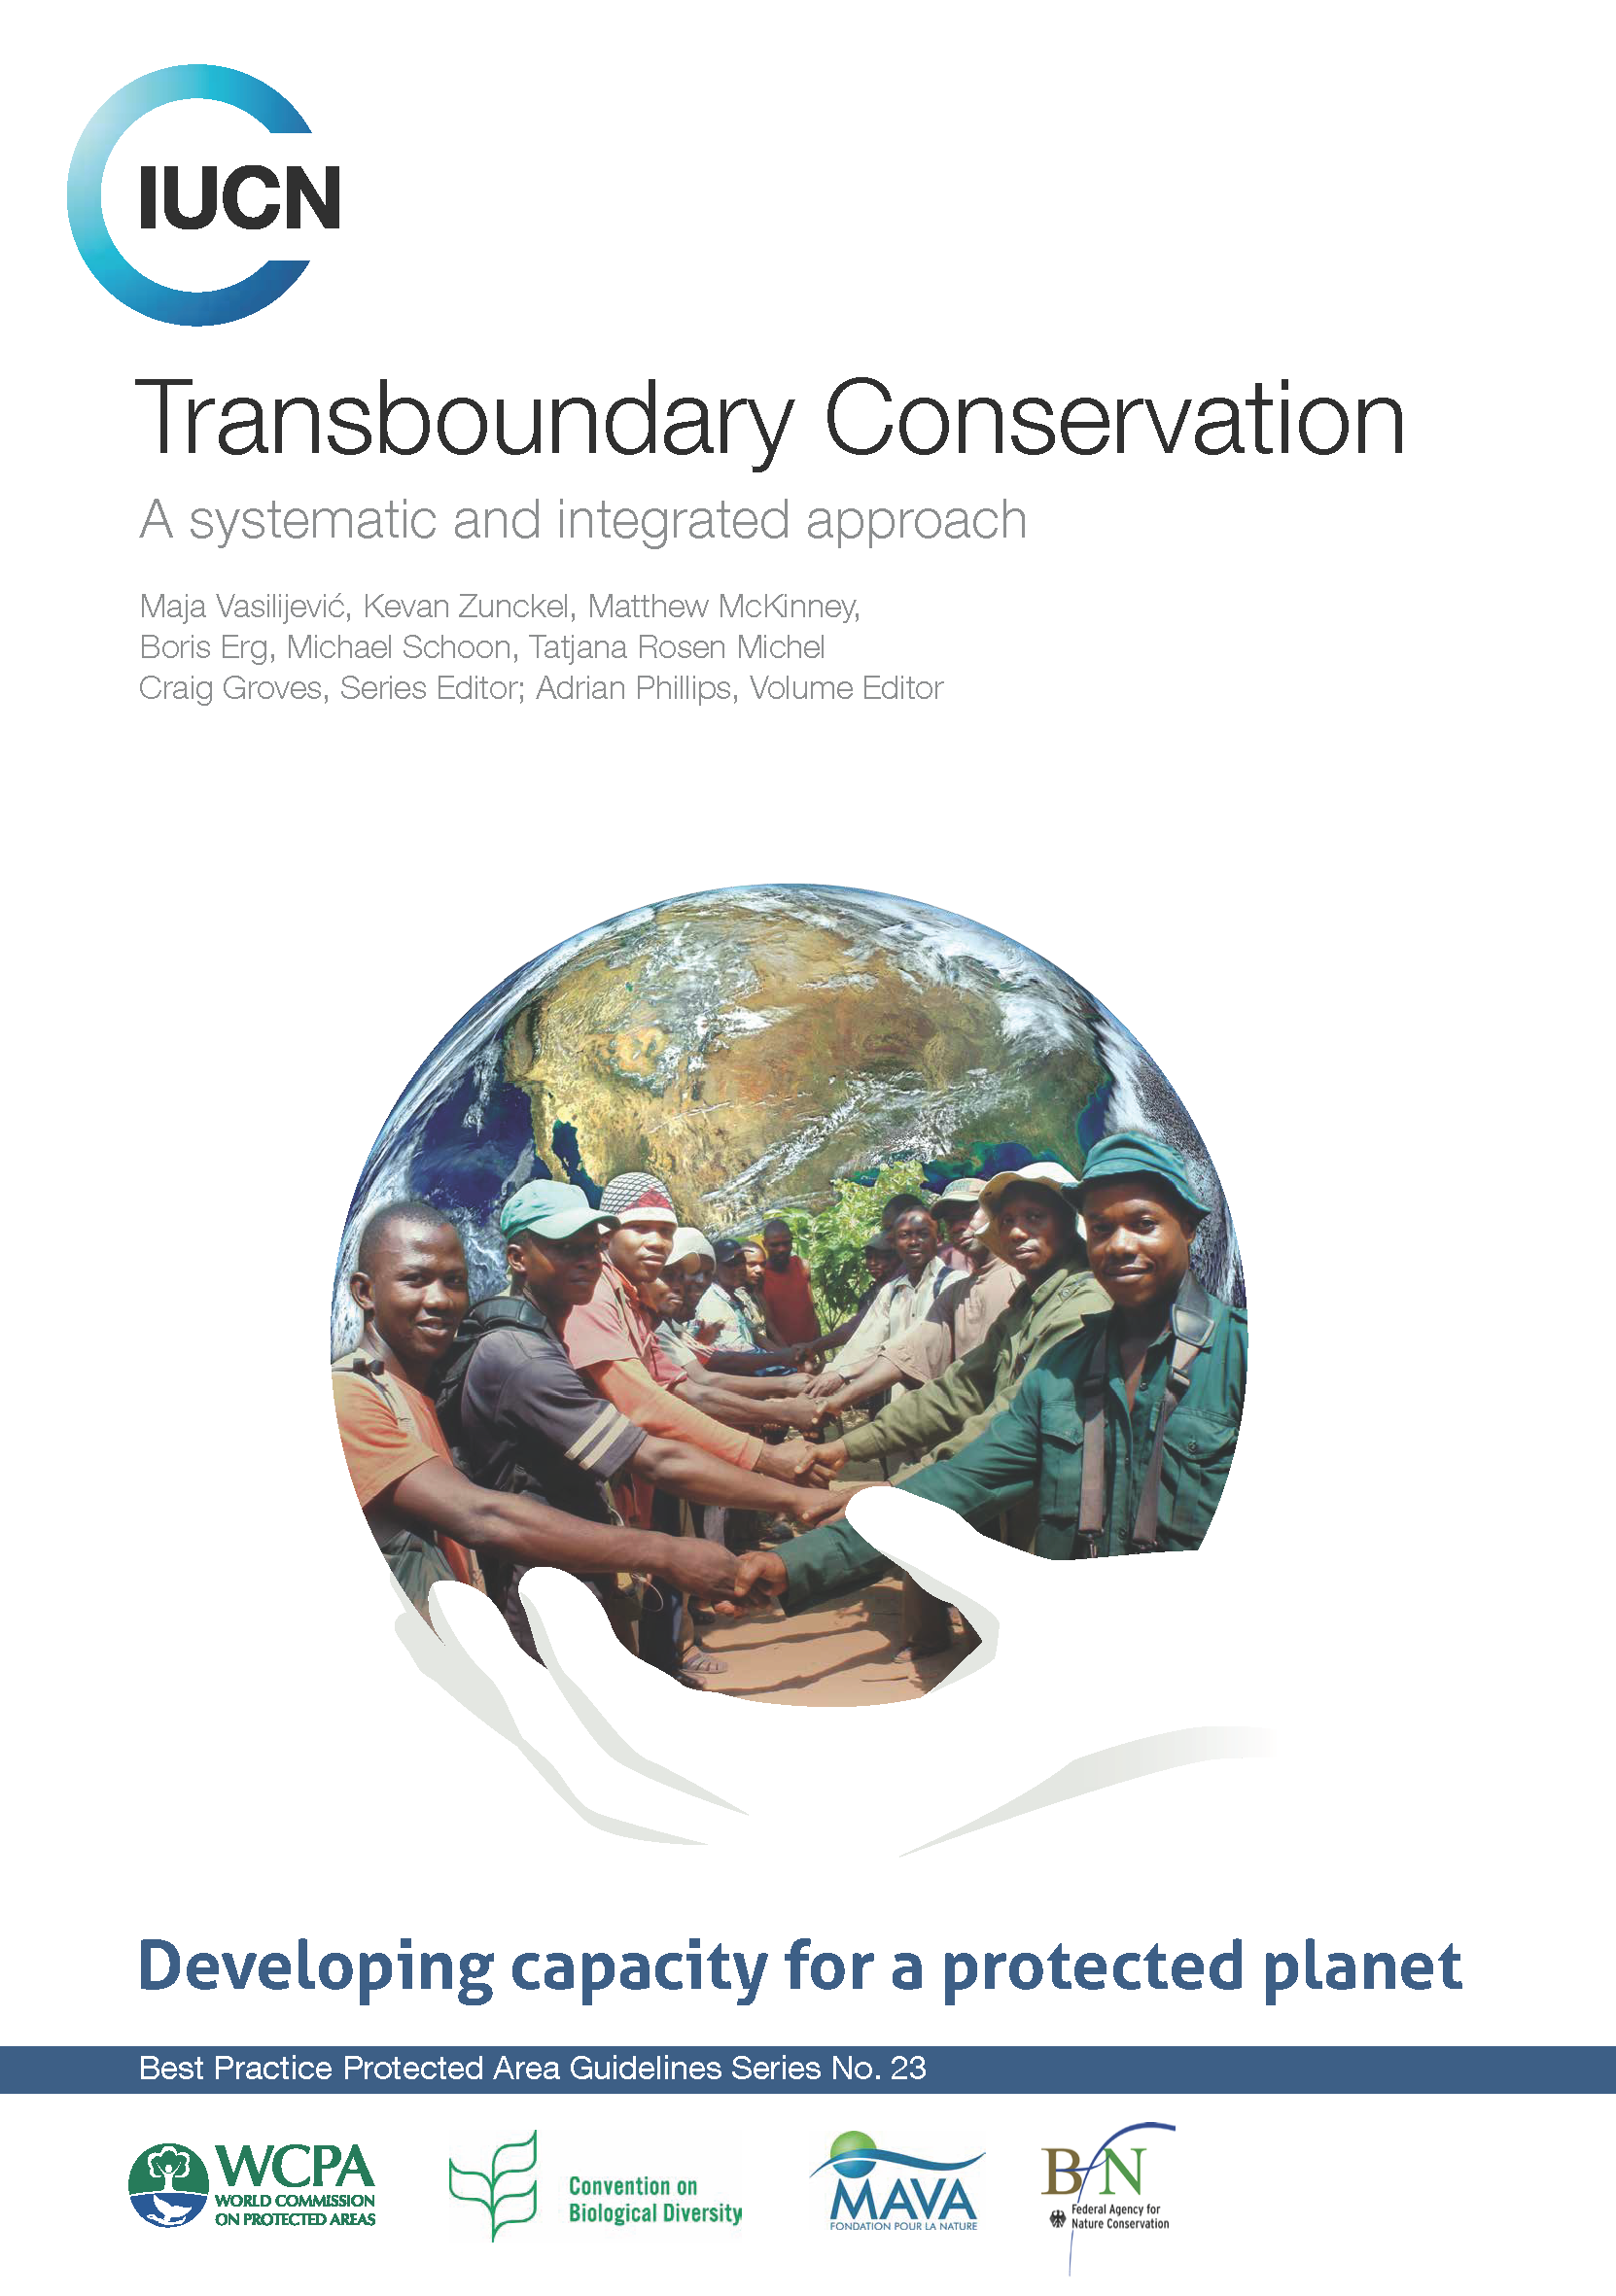 Capa da Transboundary Conservation: a systematic and integrated approach